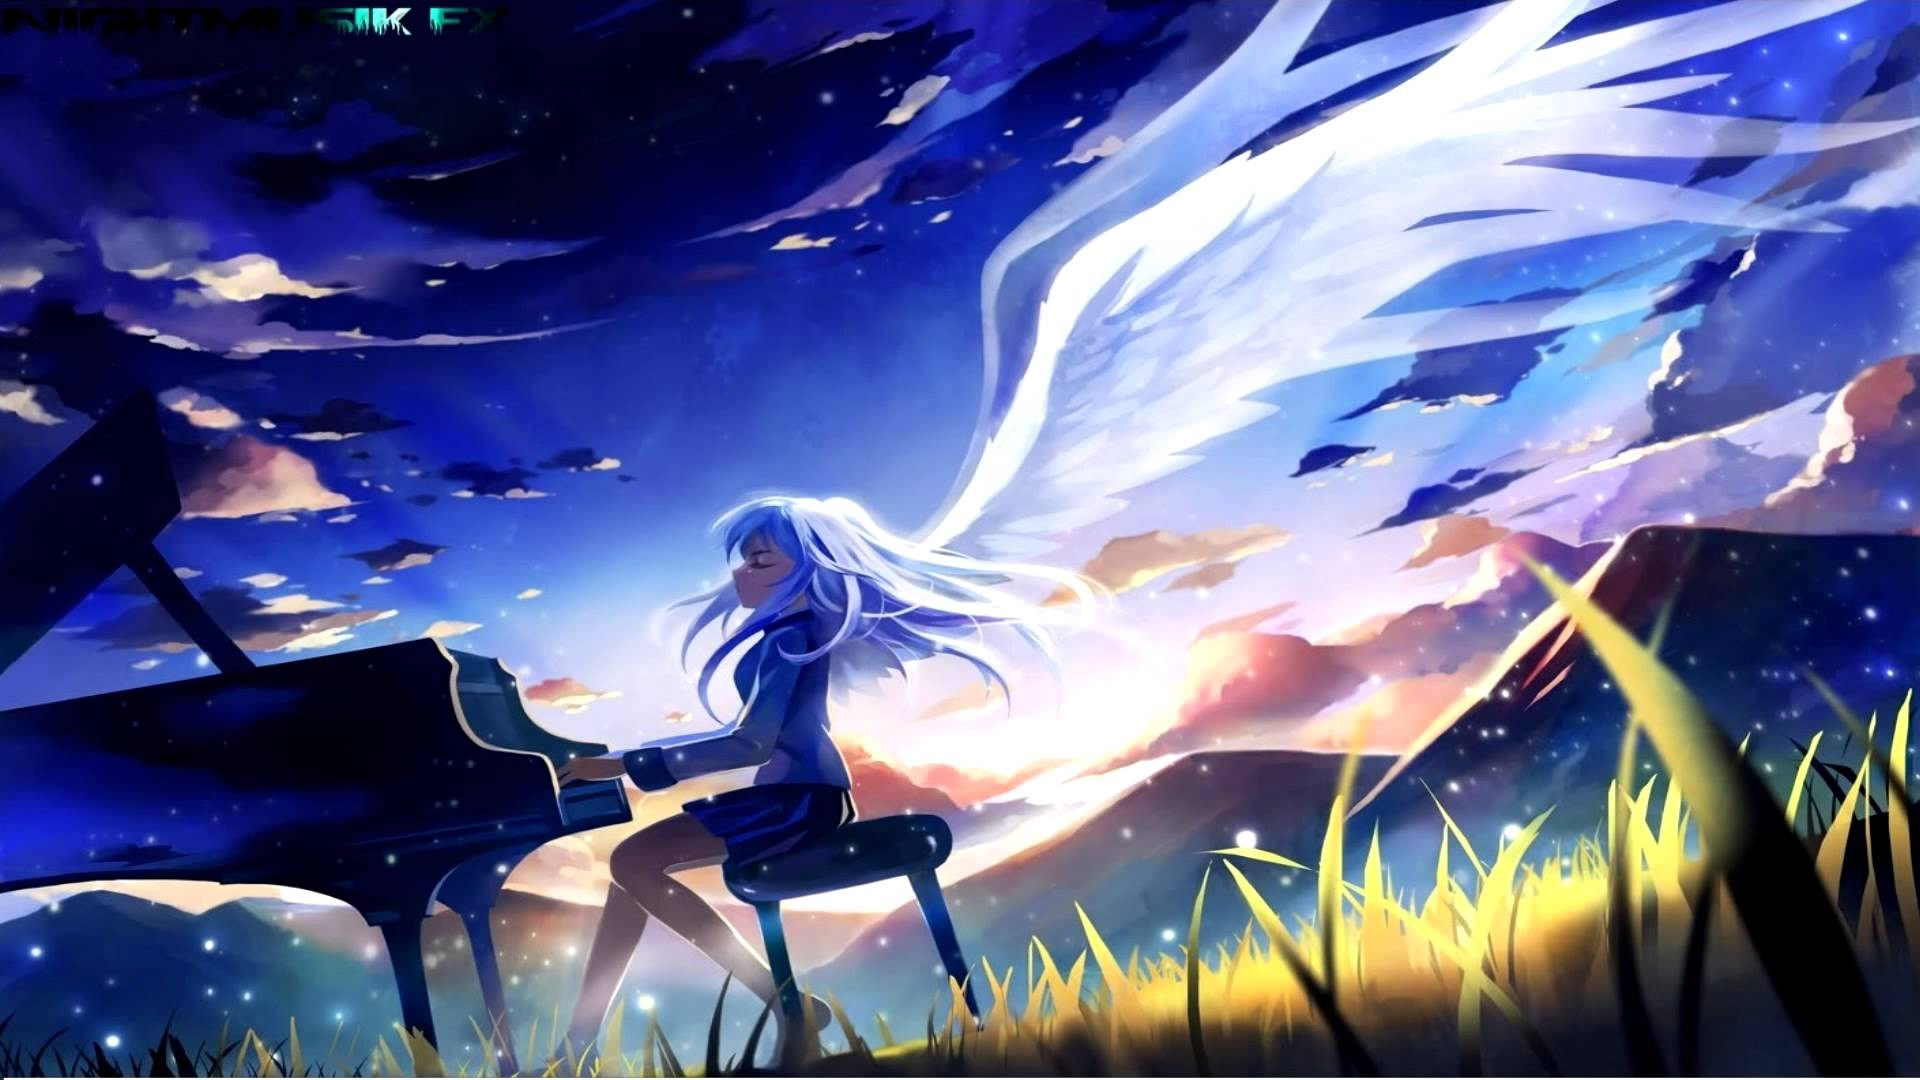 Anime Wallpaper 1920x1080 1 Download Free High Resolution